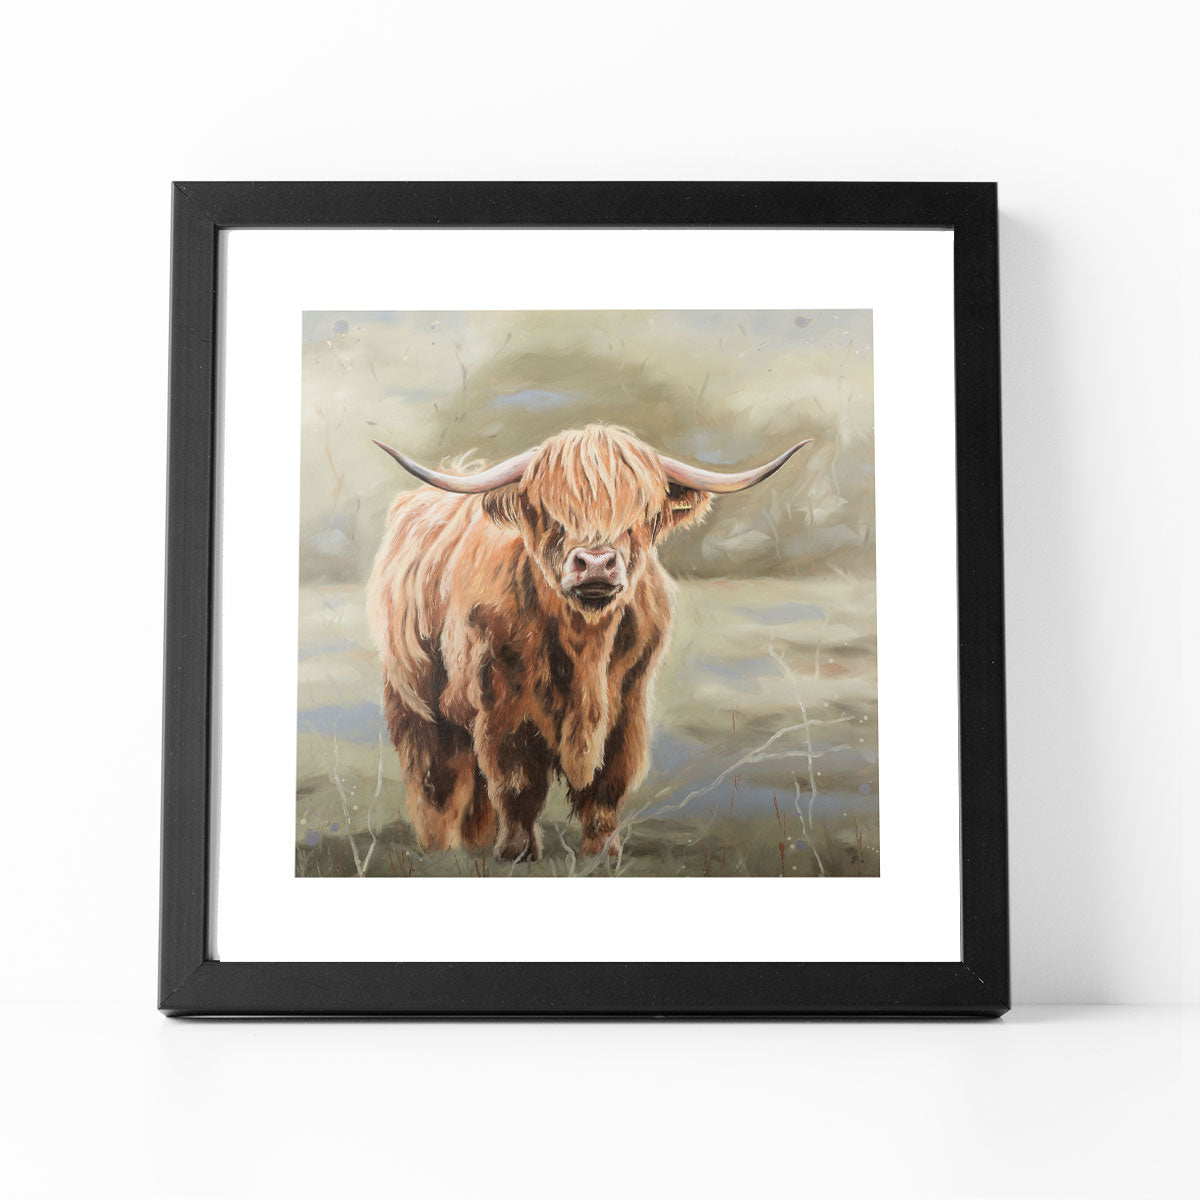 Bonnie Highland cow print